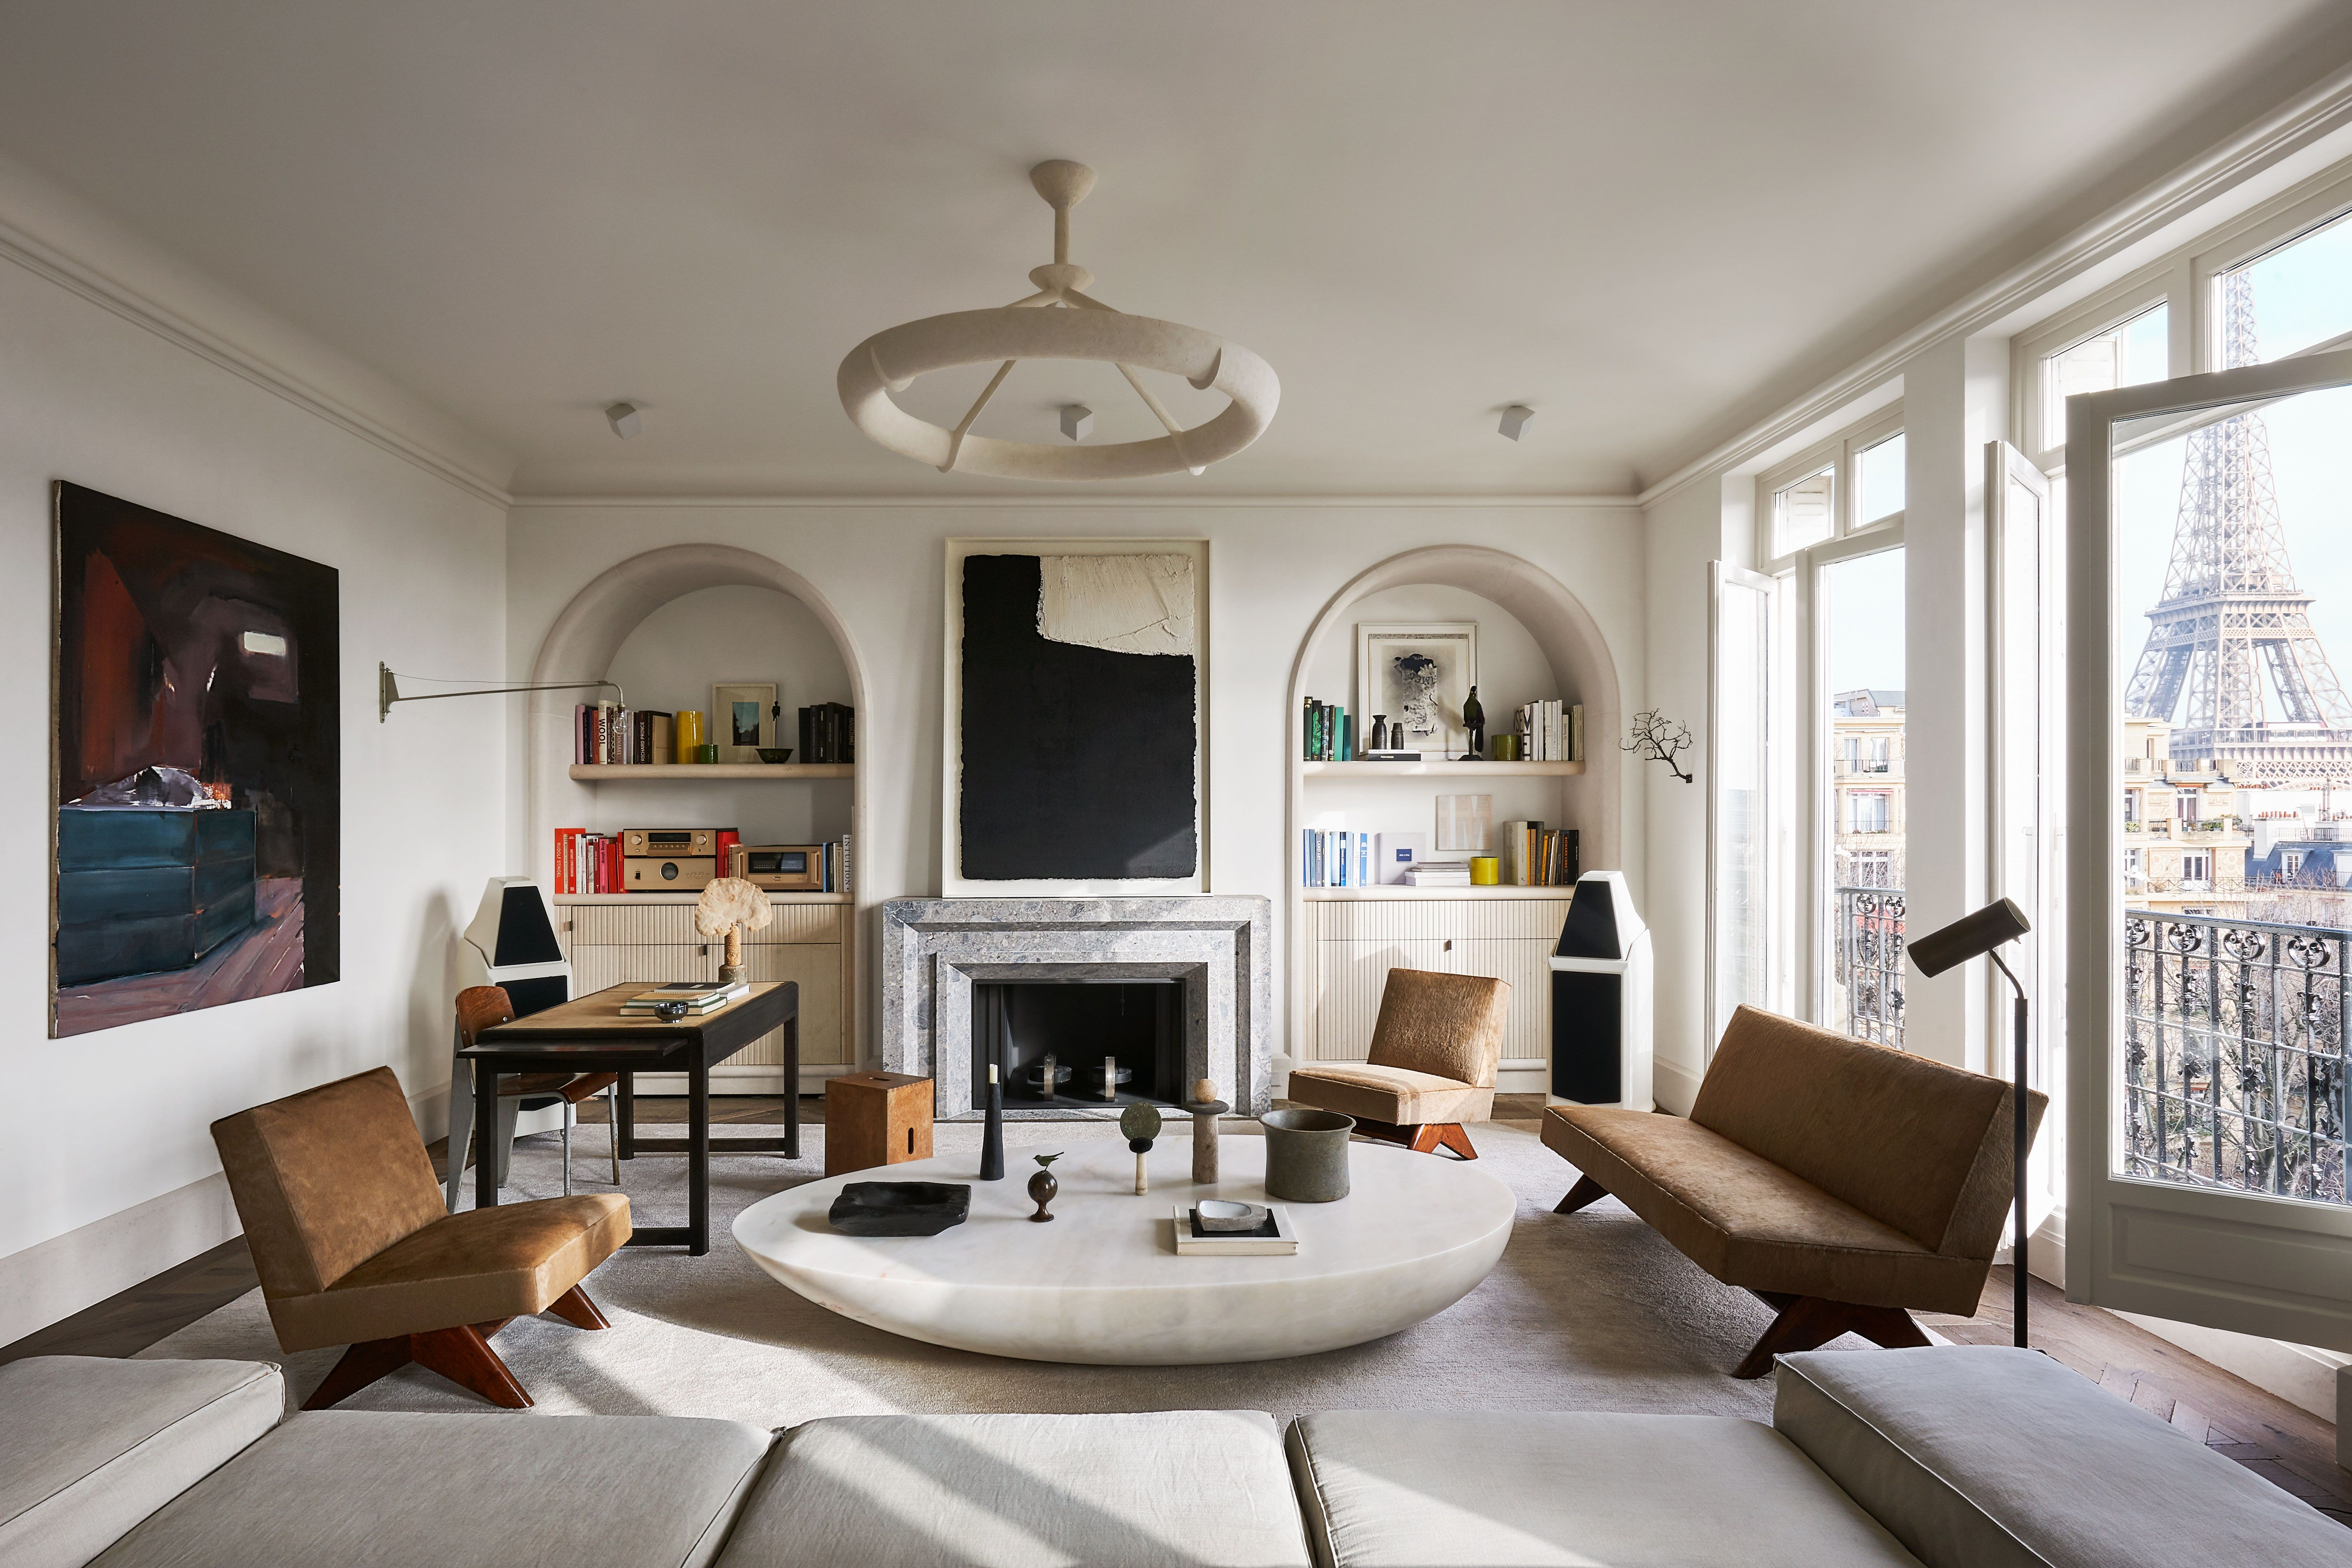 Step Inside Joseph Dirand S Sumptuously Understated Paris Apartment In 2020 Joseph Dirand Paris Apartments Architectural Digest